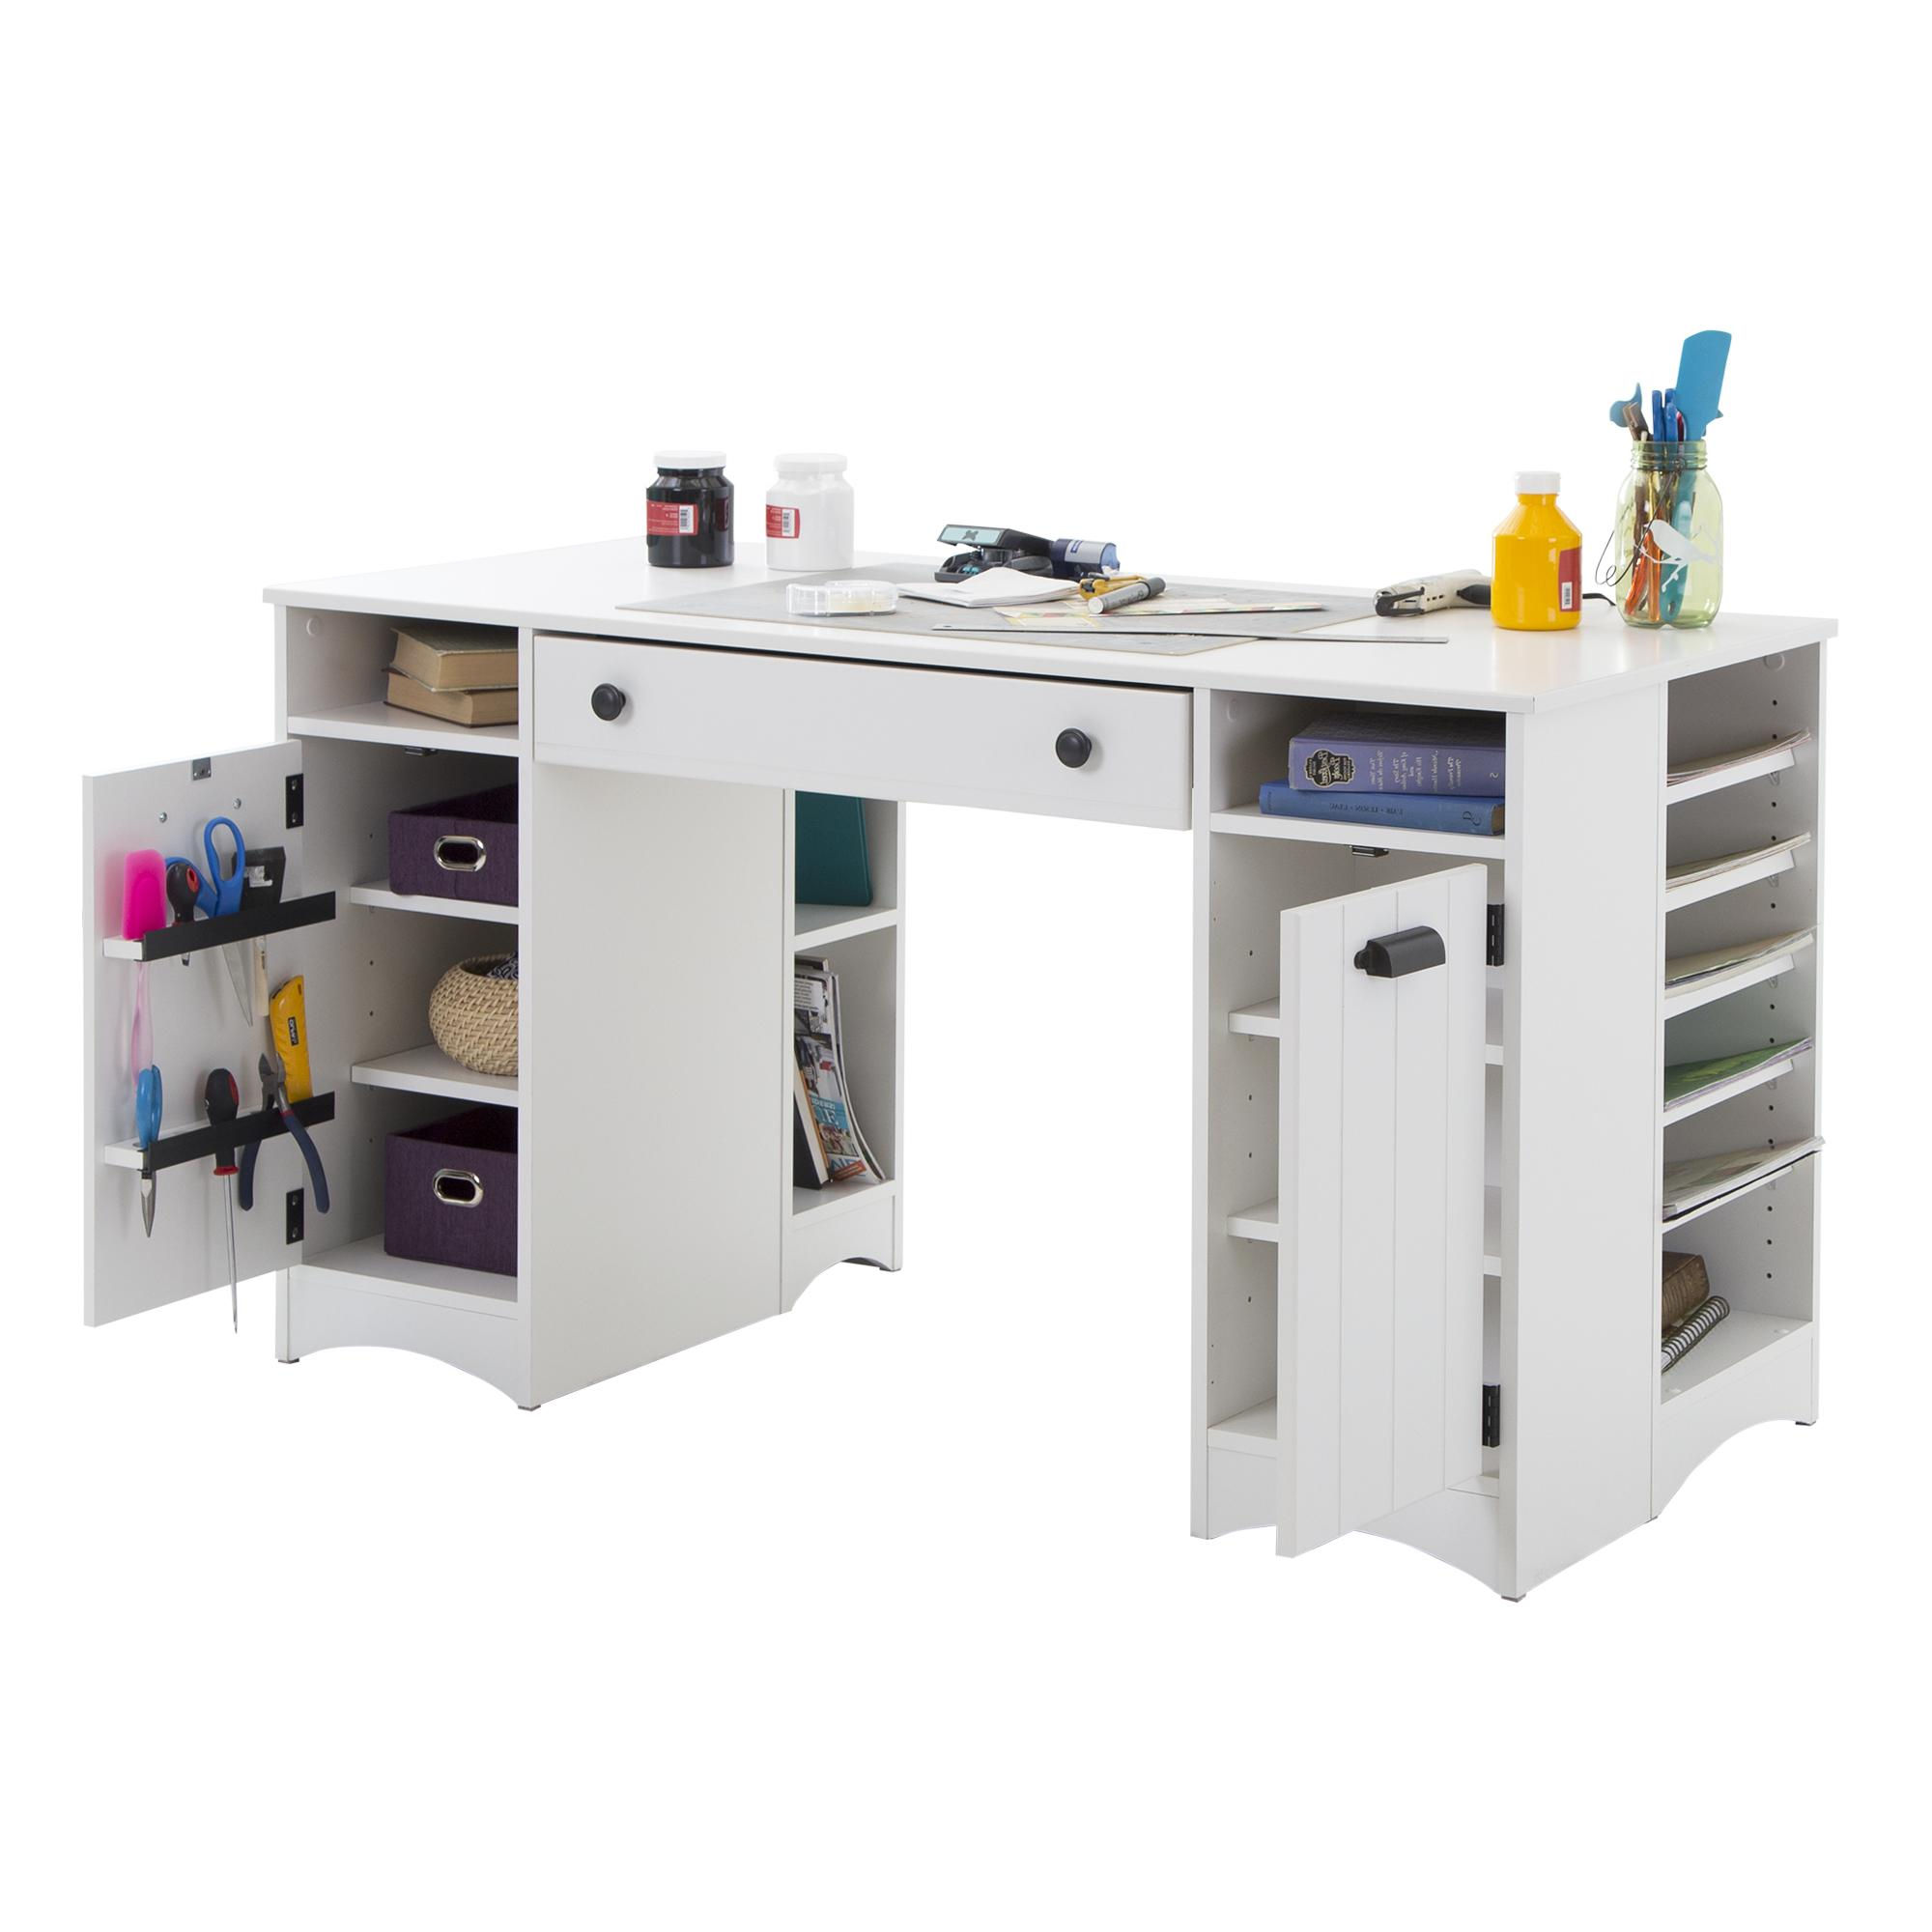 South shore artwork craft table with storage by oj commerce 7260727 - Craft desk with storage ...